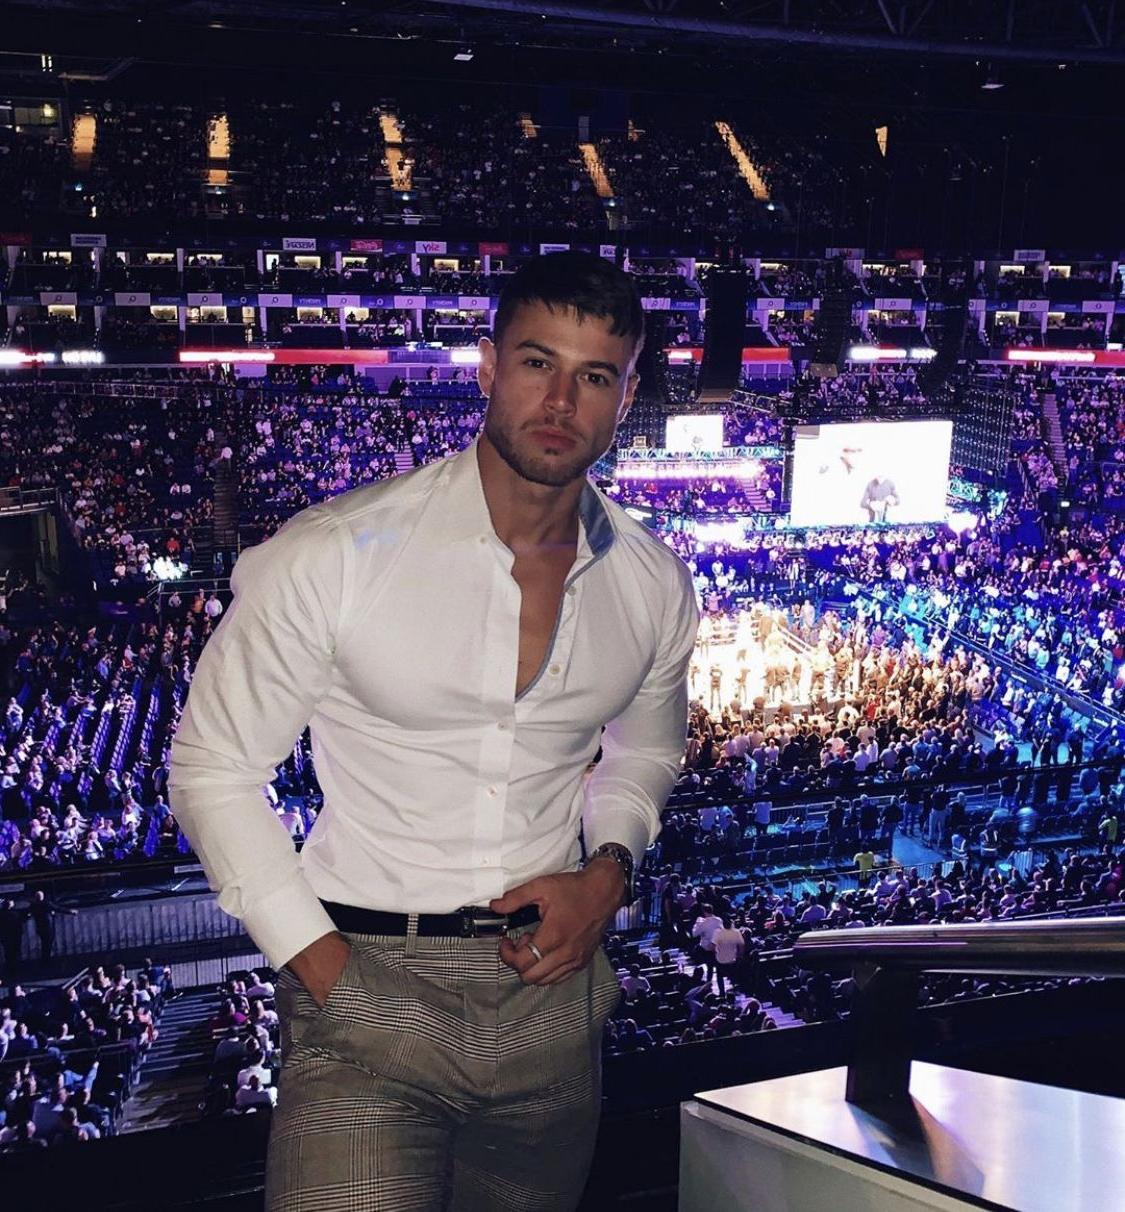 young-wealthy-hunk-concert-vip-booth-fit-hottie-luxurious-man